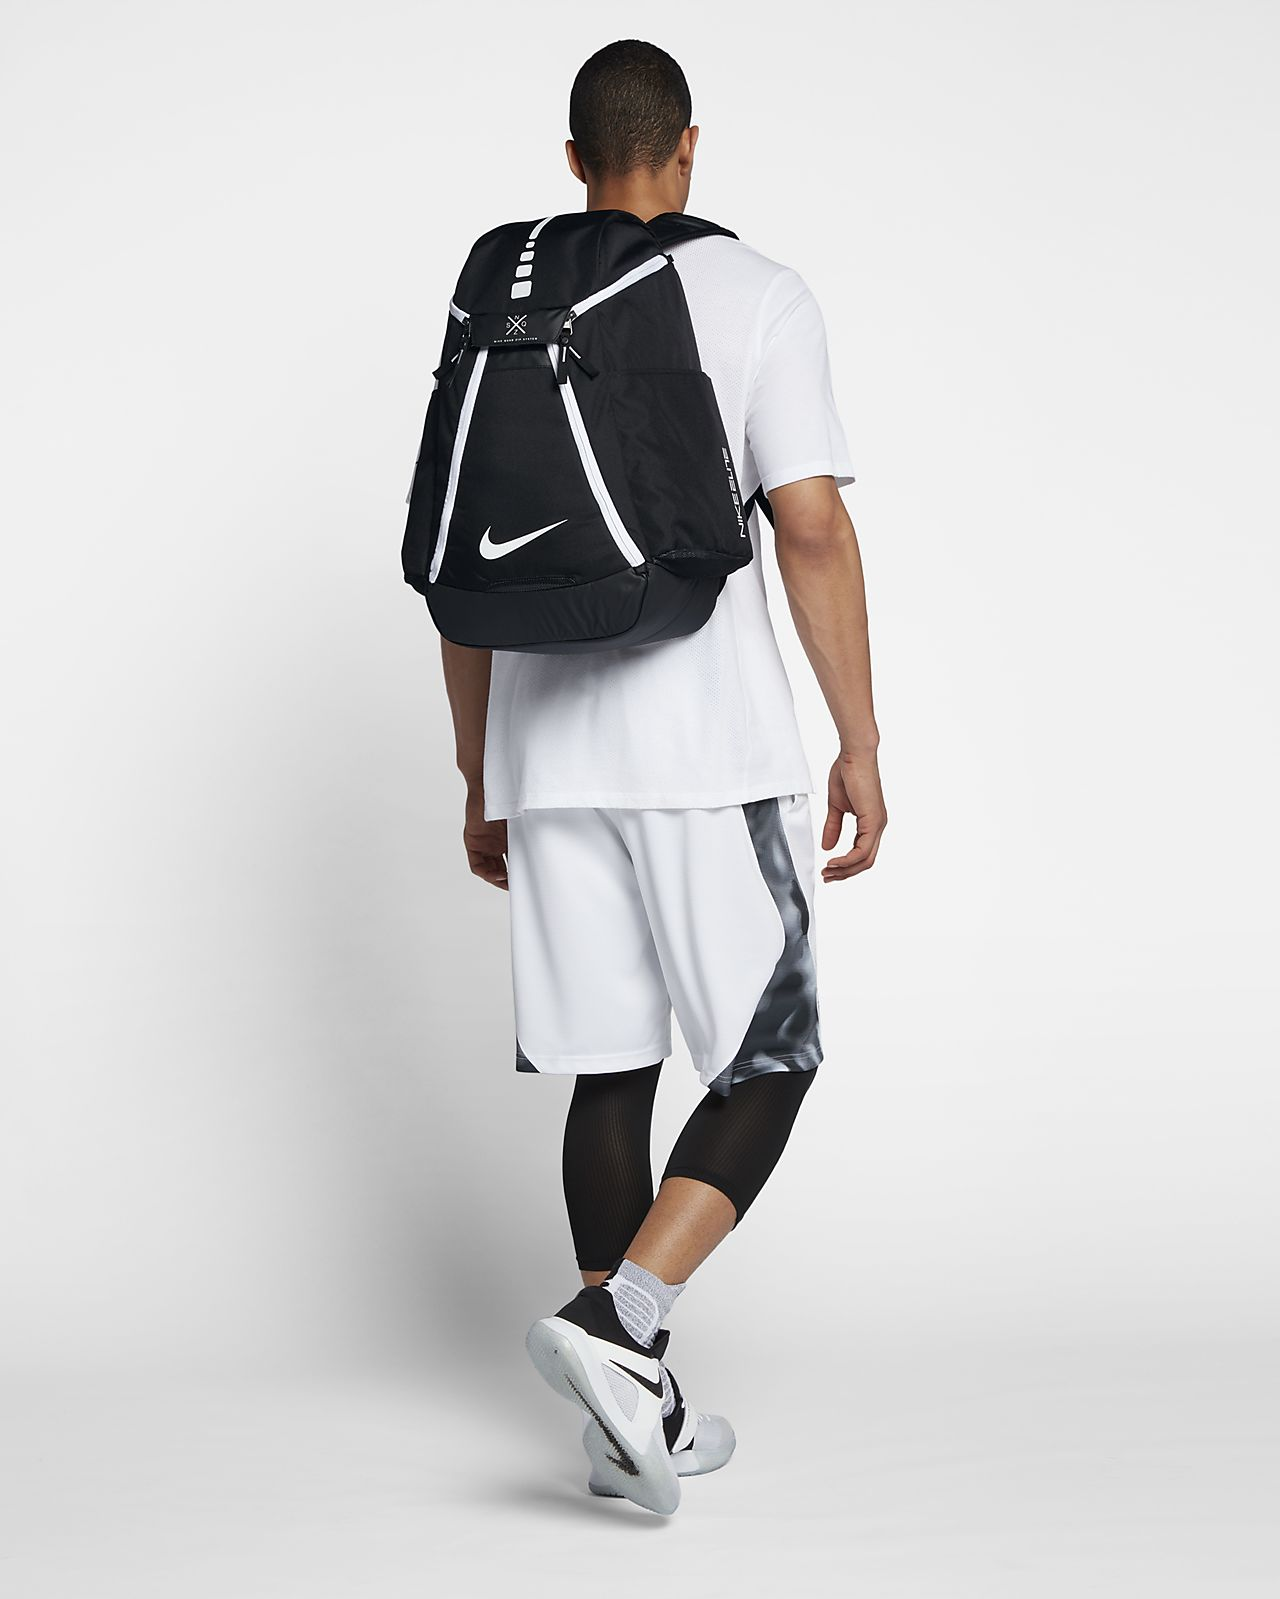 66a096c4e0 Nike Hoops Elite Max Air Team 2.0 Basketball Backpack. Nike.com ID